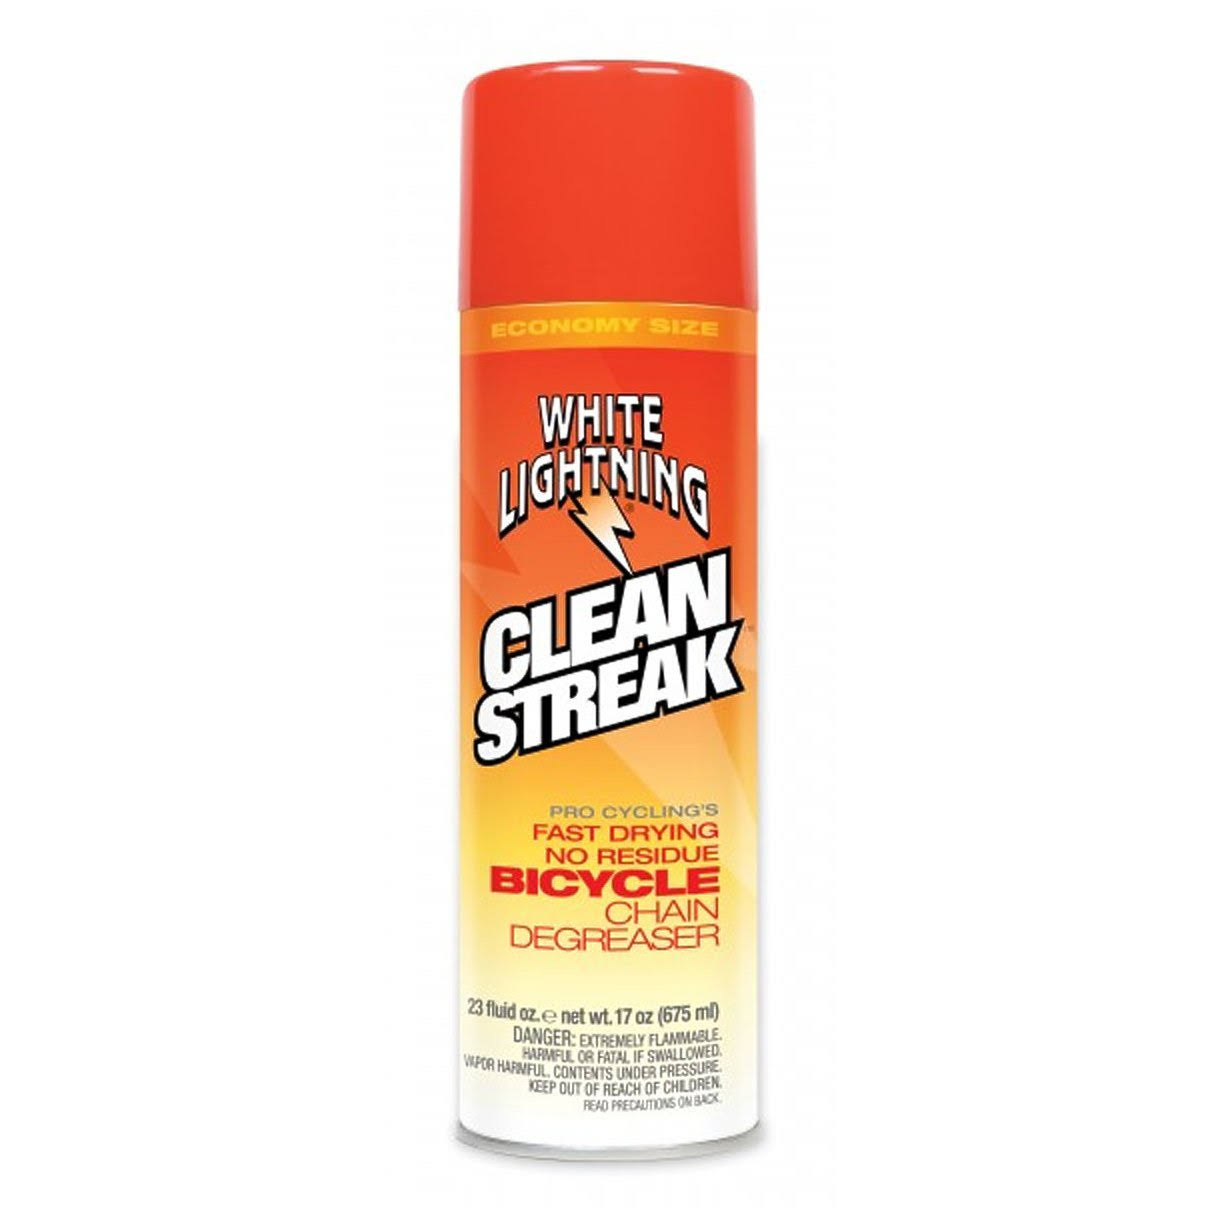 White Lightning Clean Streak Degreaser